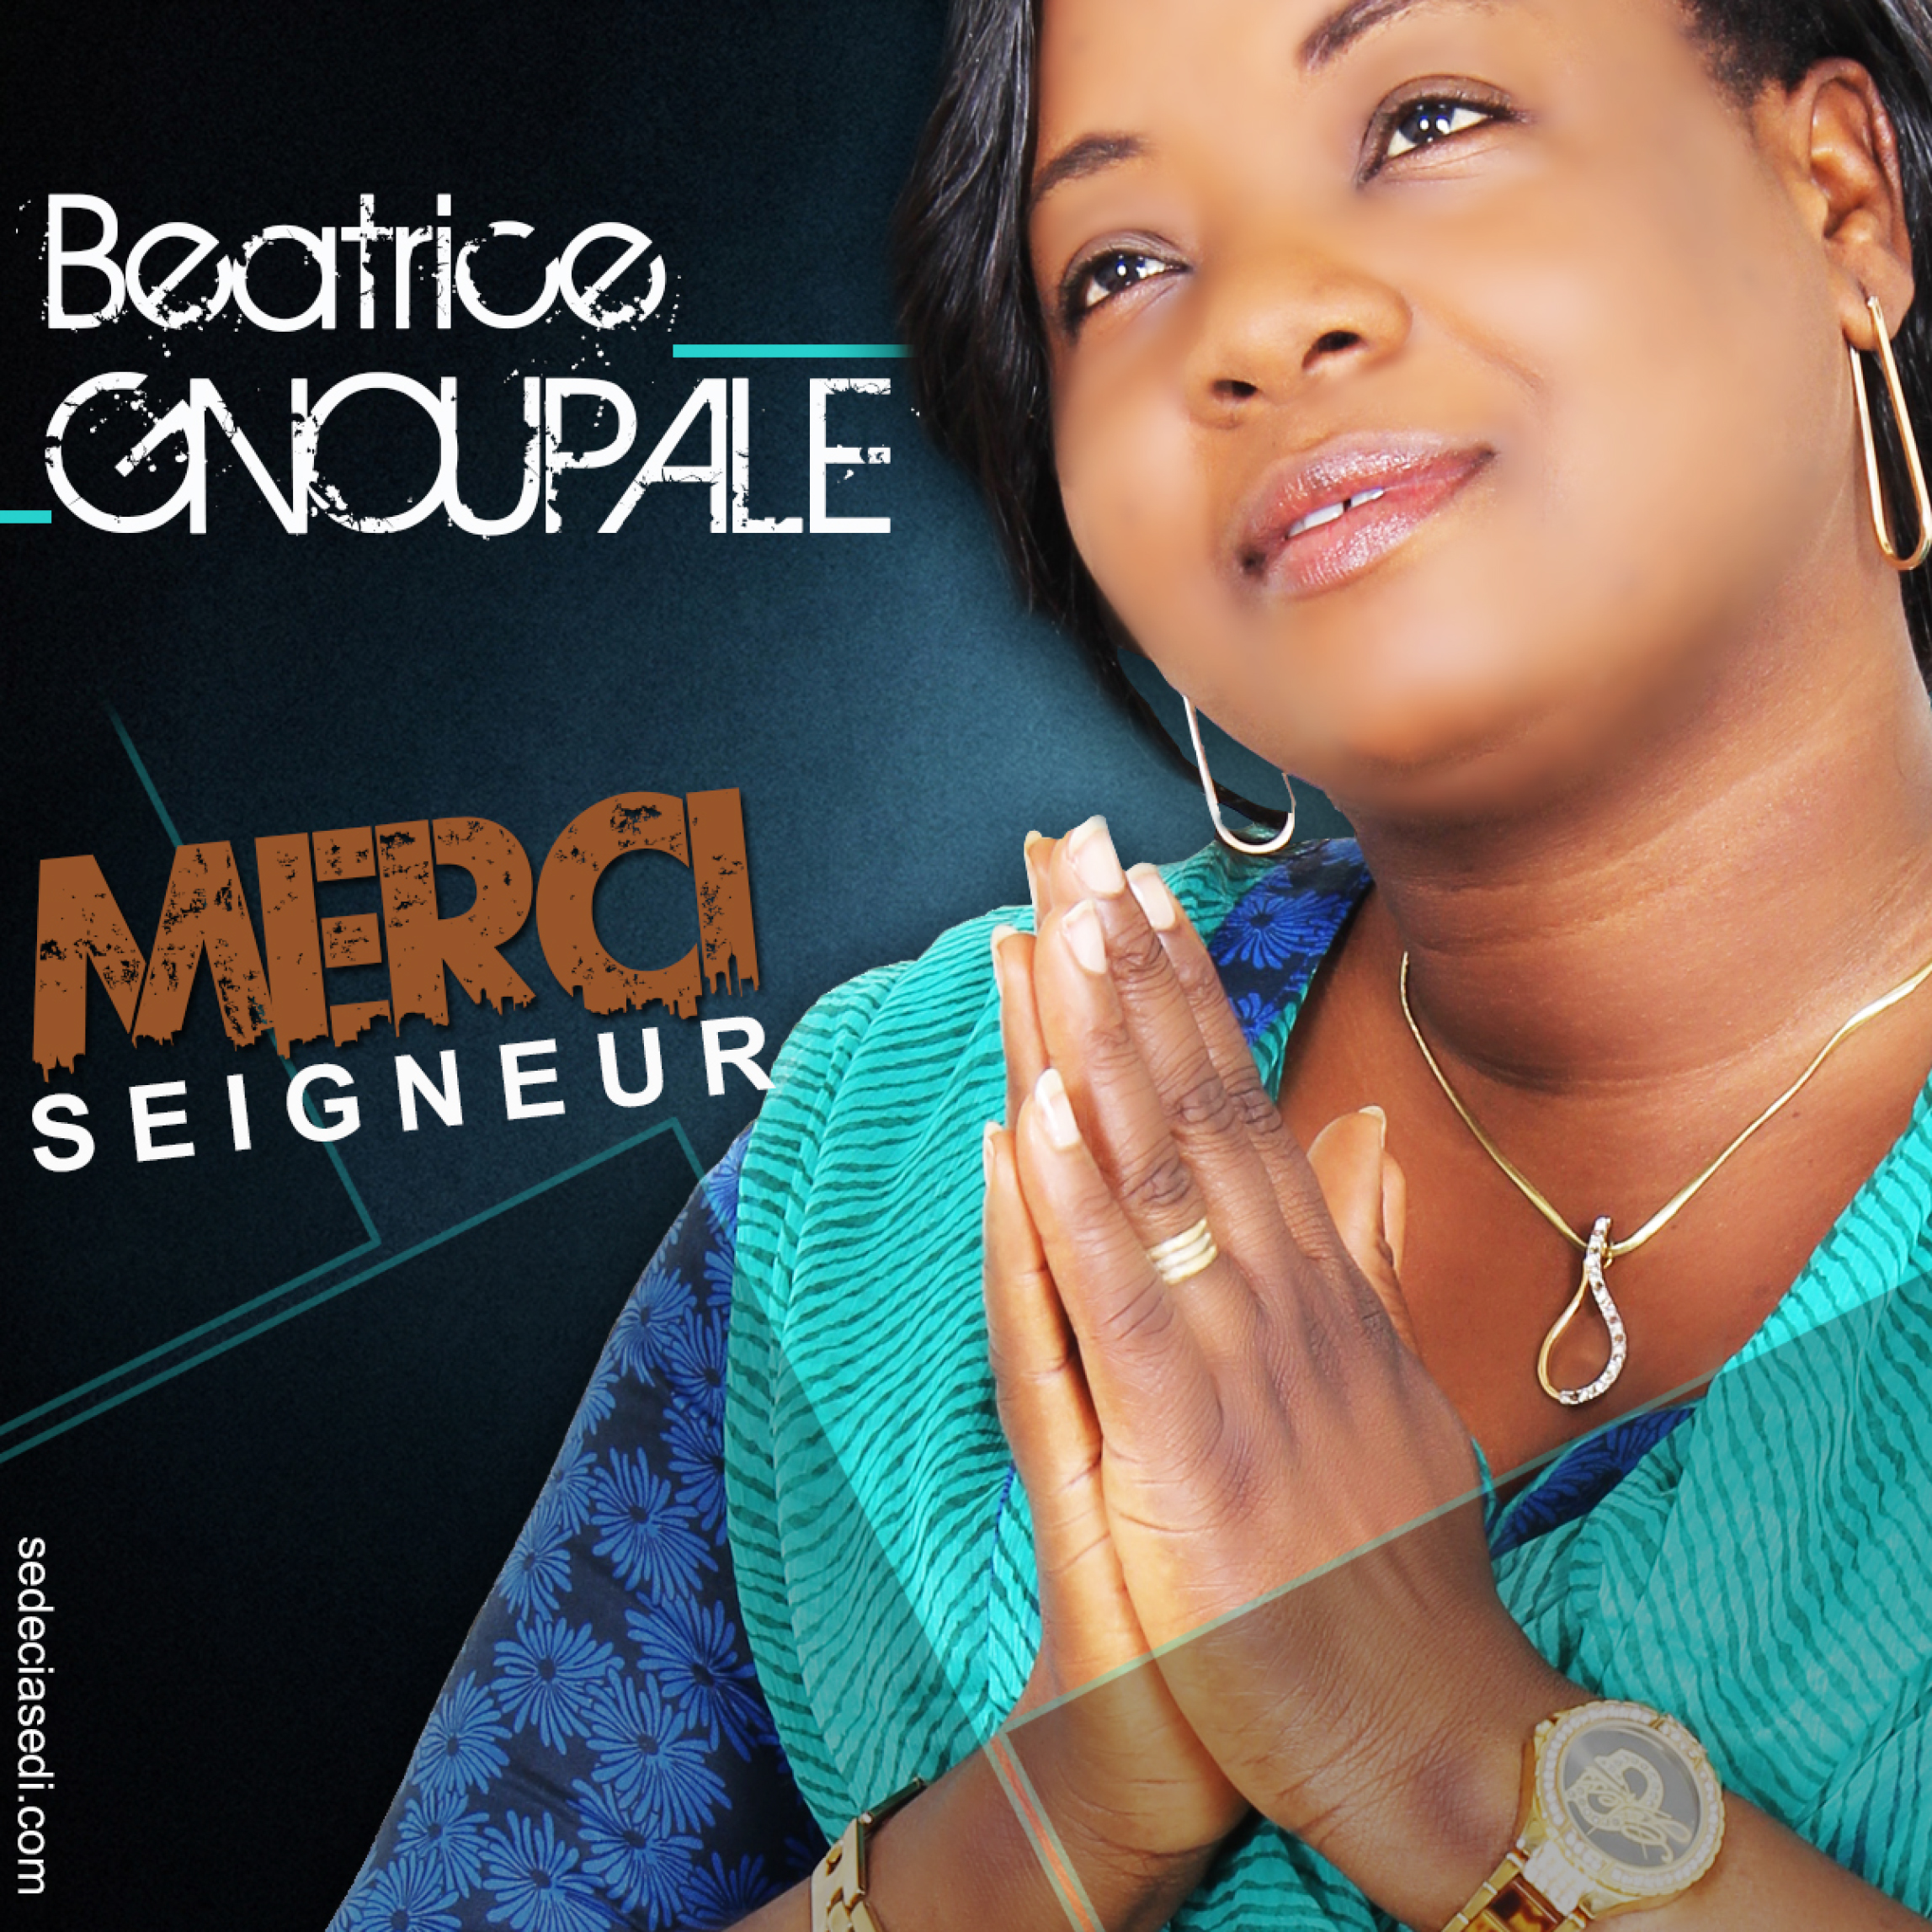 beatrice gnoupale